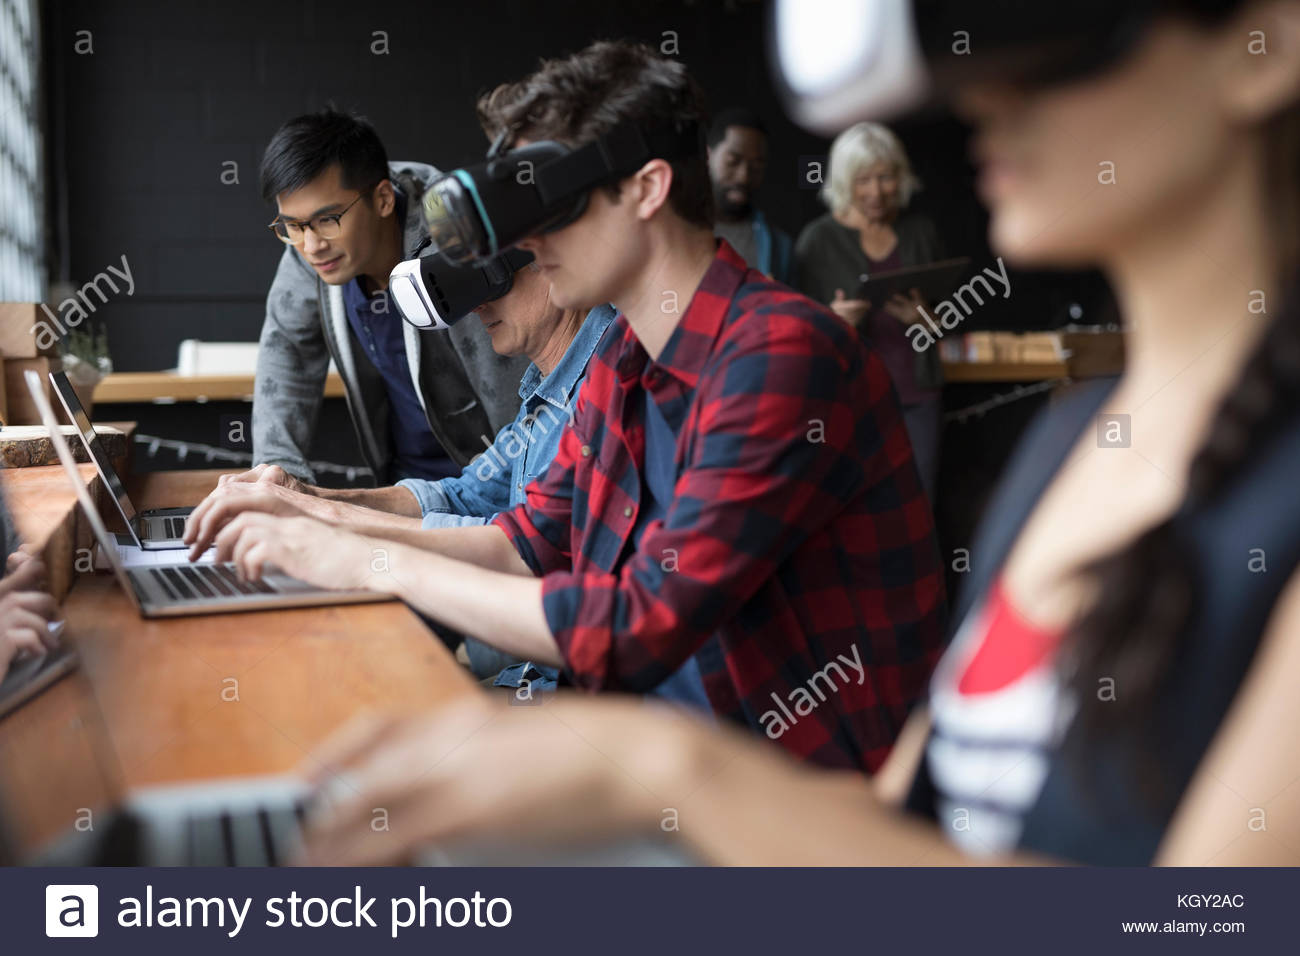 Designers testing and programming virtual reality simulator glasses at laptops in office - Stock Image